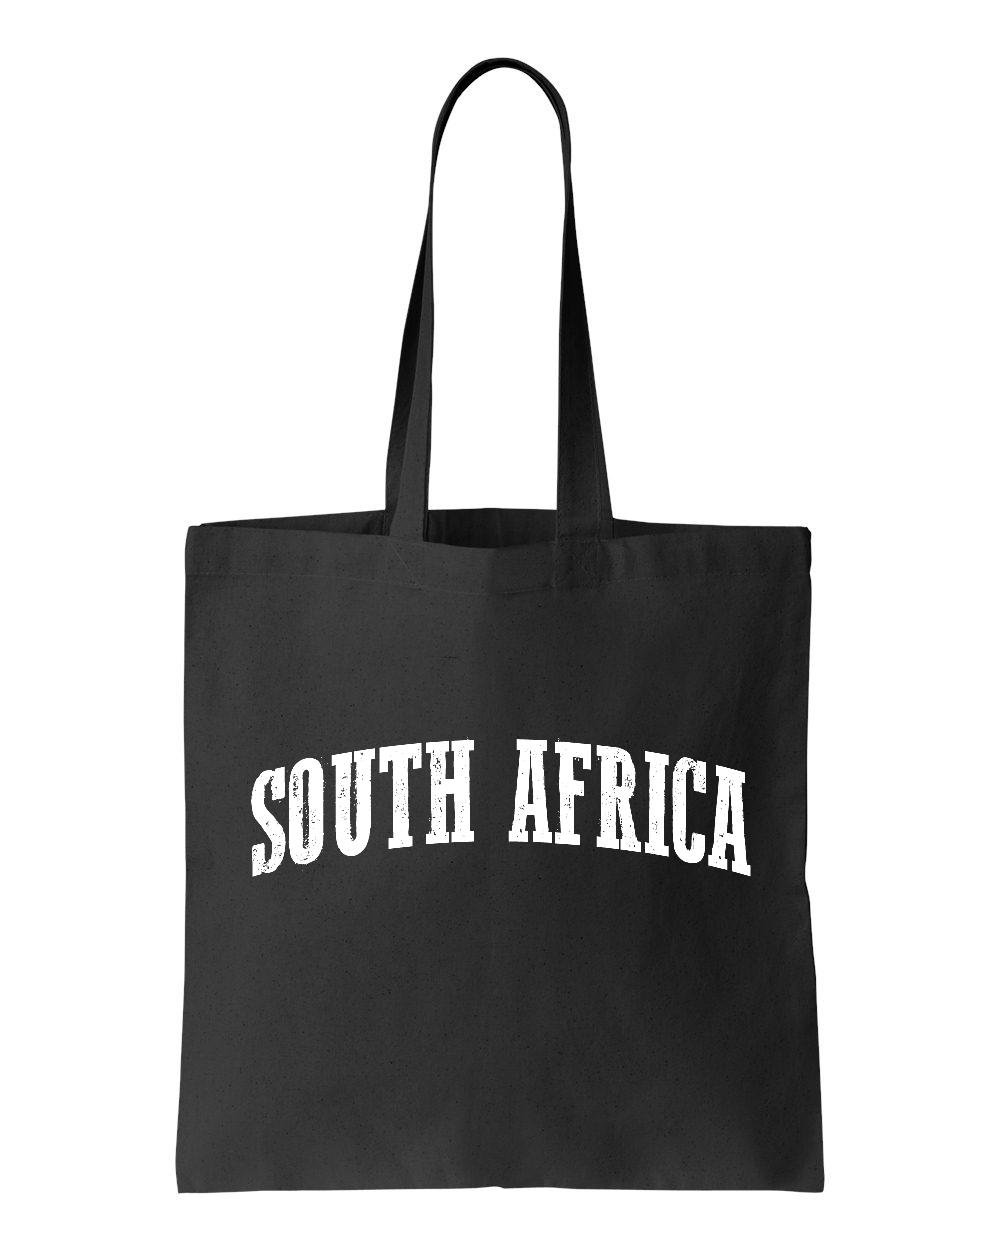 Ugo What To Do in South Africa Travel Guide Deals Cape Town Map African Flag Tote Handbags Bags Work School Travel by Ugo